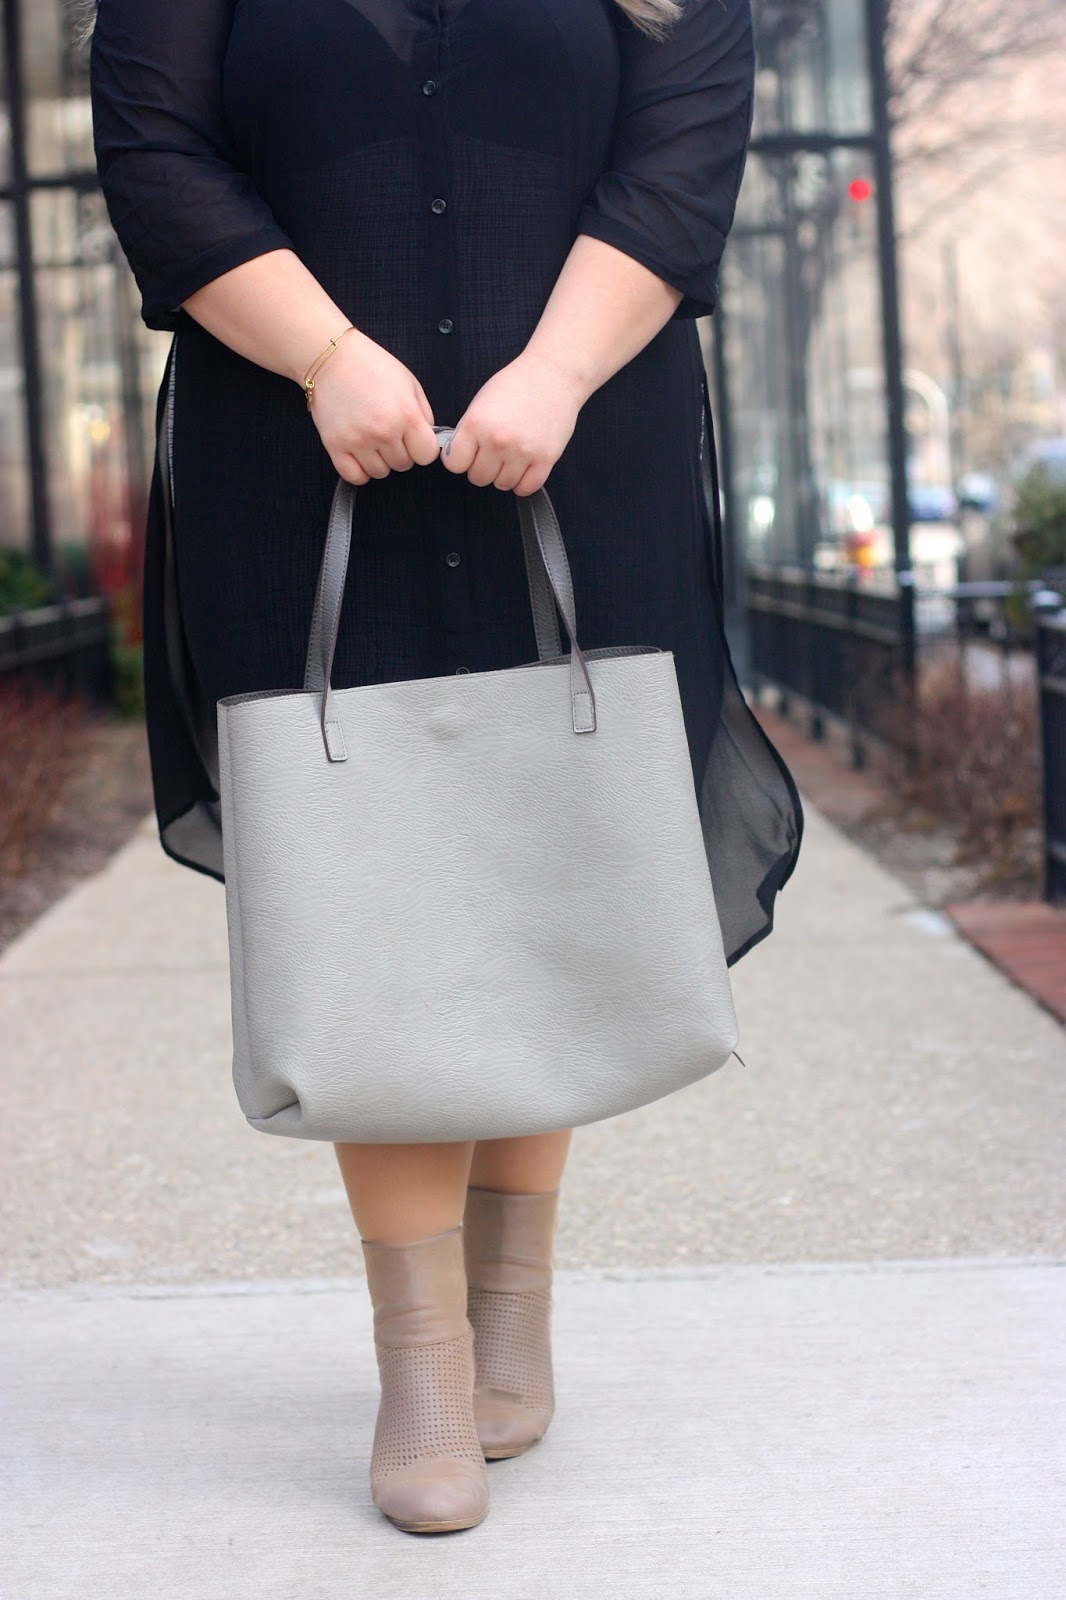 slit dress, see through plus size dress, how to wear midi skirts curvy, button up long sleeve dress, street level tote, taupe ankle boots, taupe booties, blonde hair dark roots, plus size fashion blogger, natalie craig, natalie in the city, chicago, plus size street style